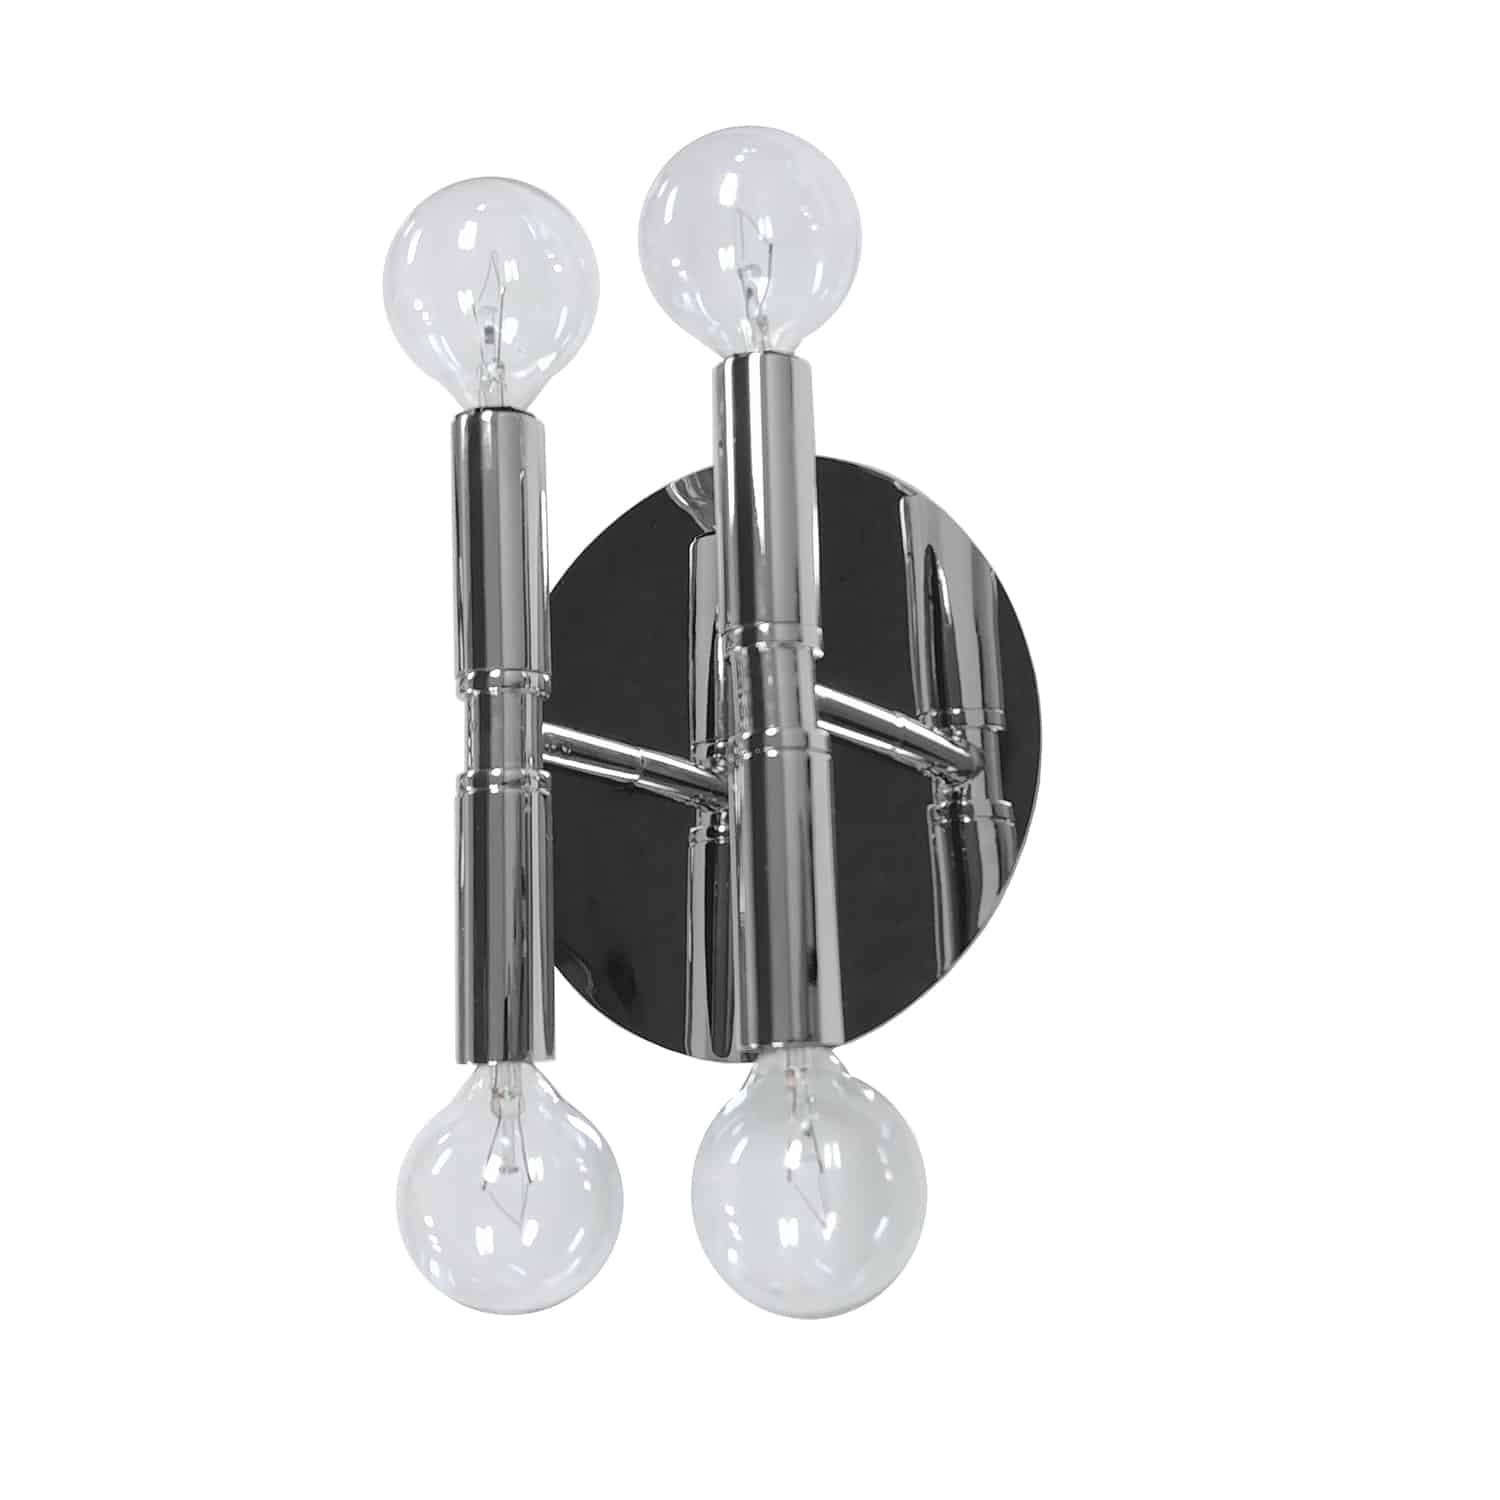 4 Light Incandescent Wall Sconce, Polished Chrome